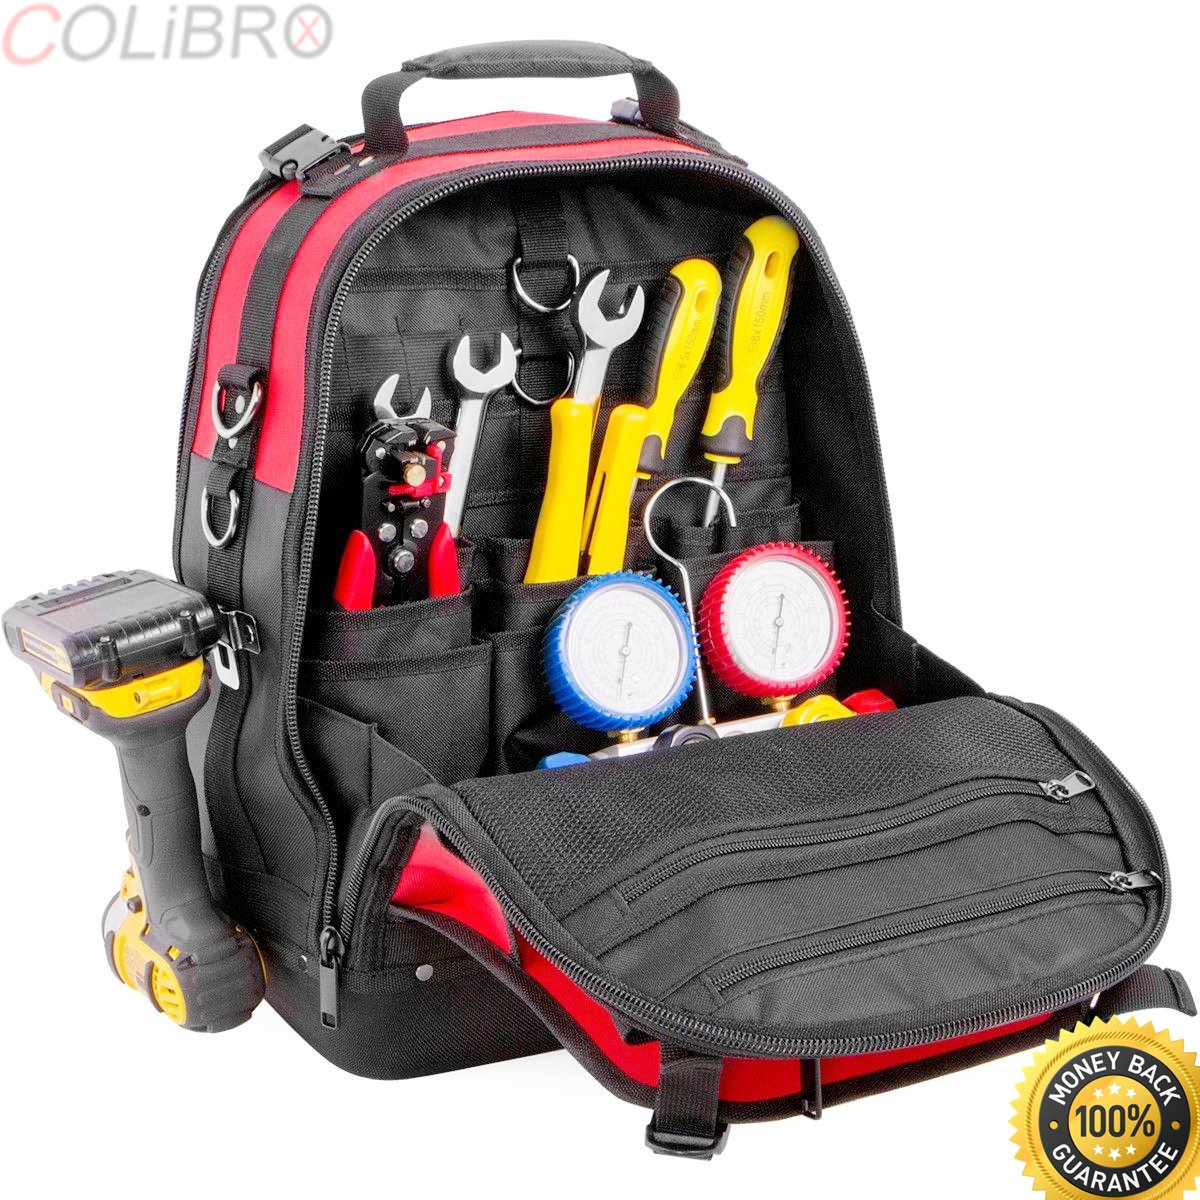 51777e563baca COLIBROX-xtreme tough Jobsite Backpack Tool Storage Bag Heavy Duty  Construction Book Bag. craftsman tool backpack. tool backpack home depot.  best tool bag ...